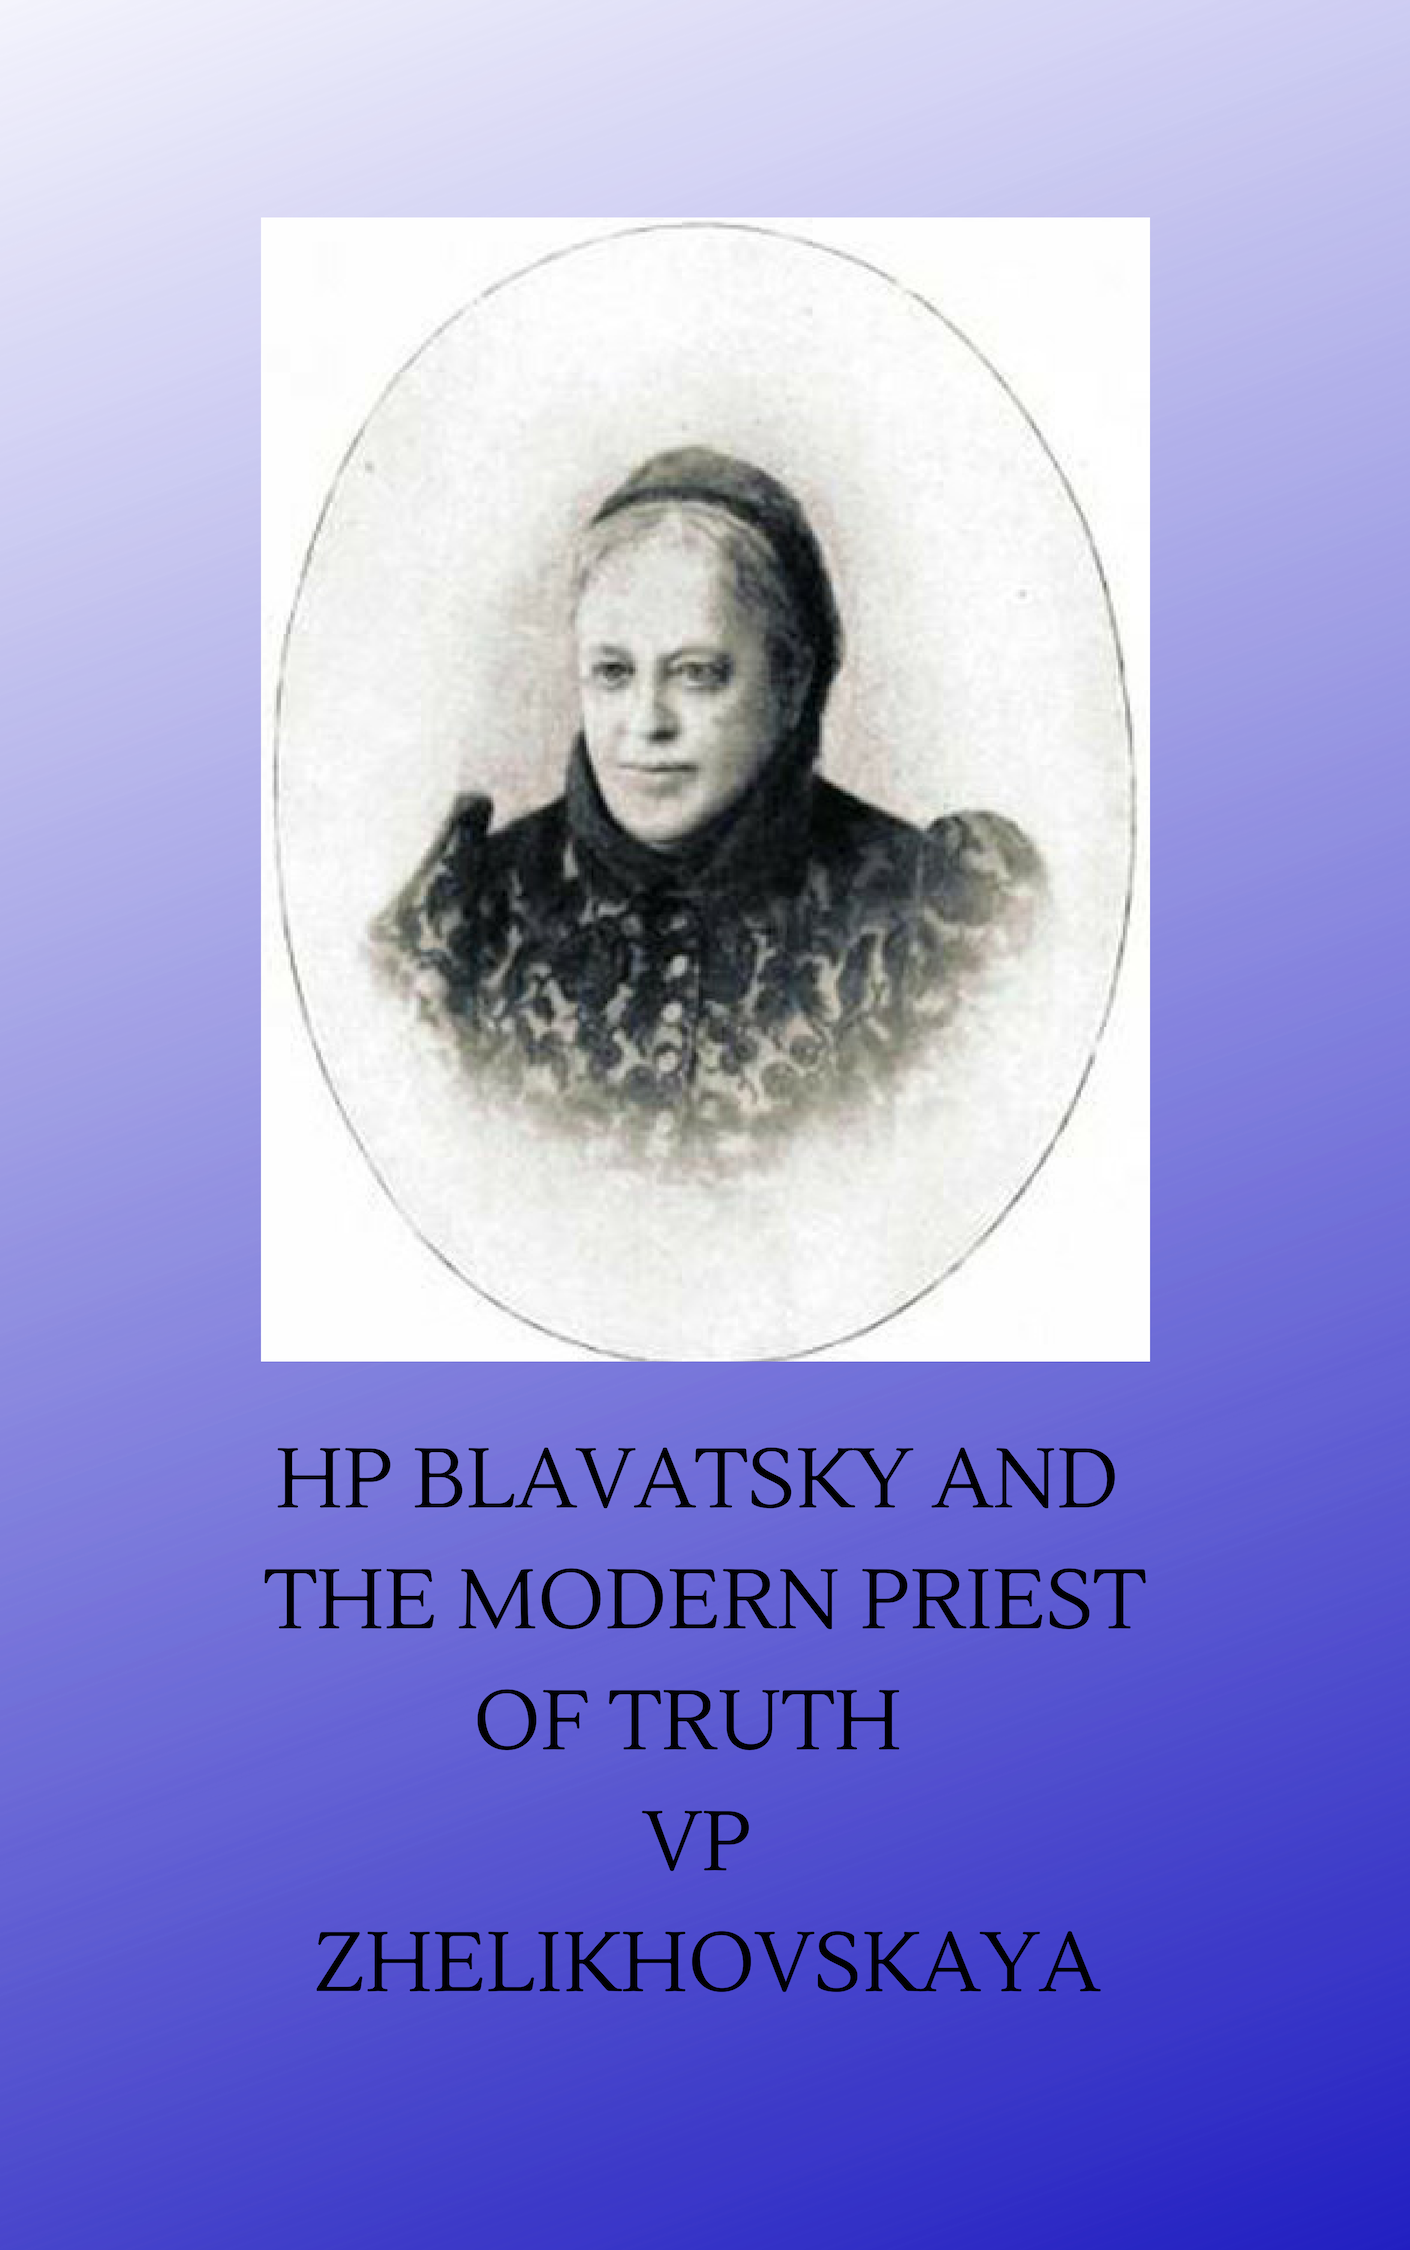 HP Blavatsky  and the Modern Priest of Truth:  Reply of Mrs. Ygrek (V.P. Zhelikhovskaya) to Mr. Vsevolod Solovyov ch. 1-4